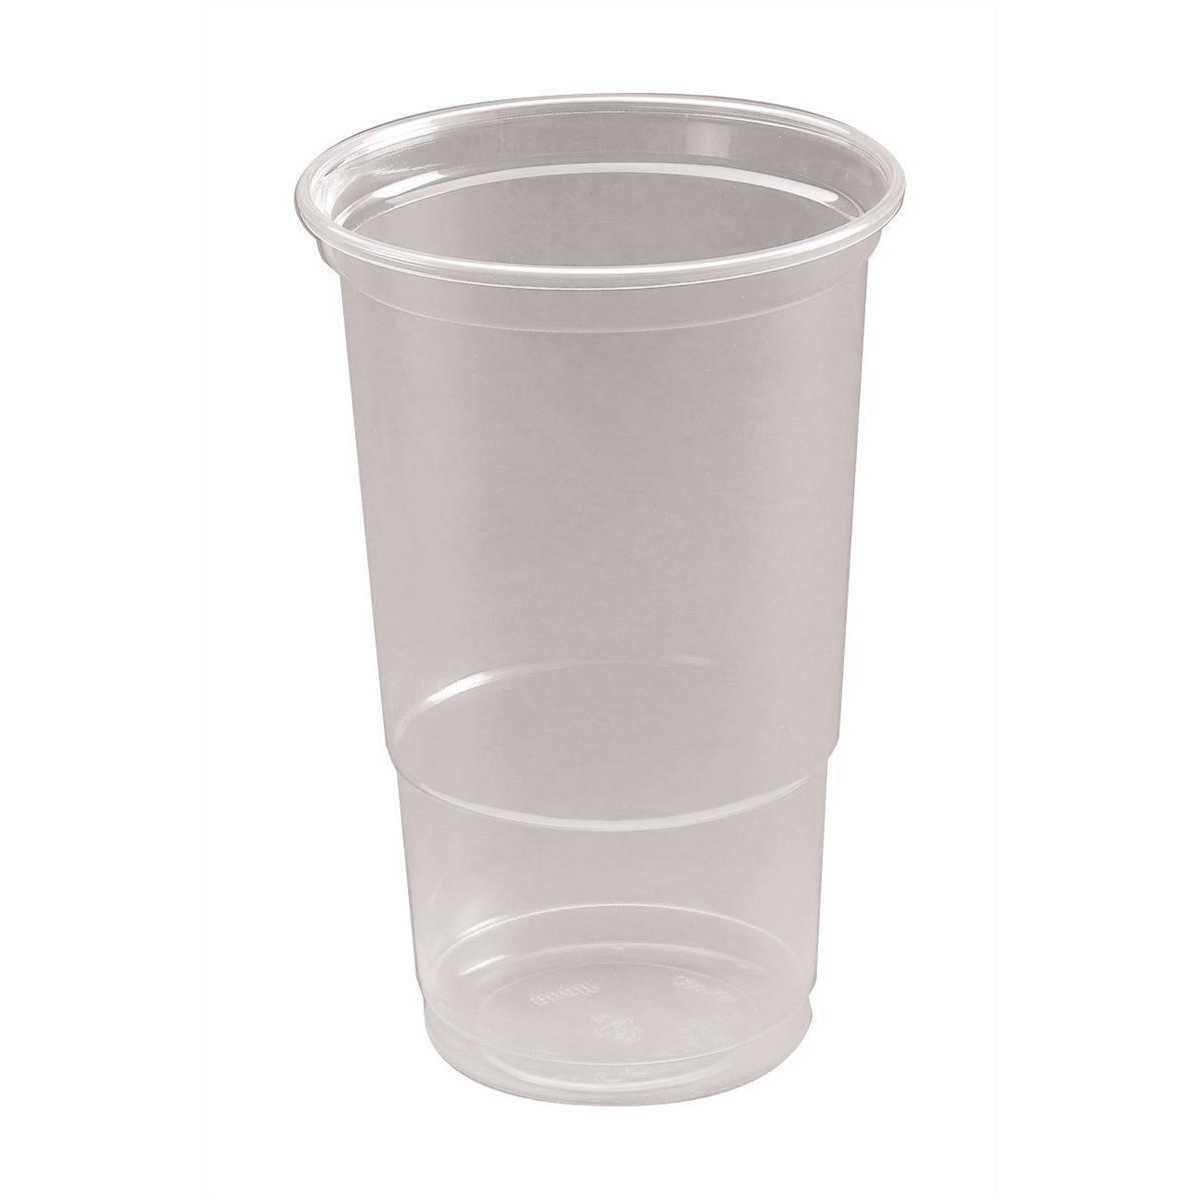 Disposable Cups & Accessories Pint Tumbler CE Marked Polypropylene 19.2oz 568ml Clear Ref 30011 Pack 50